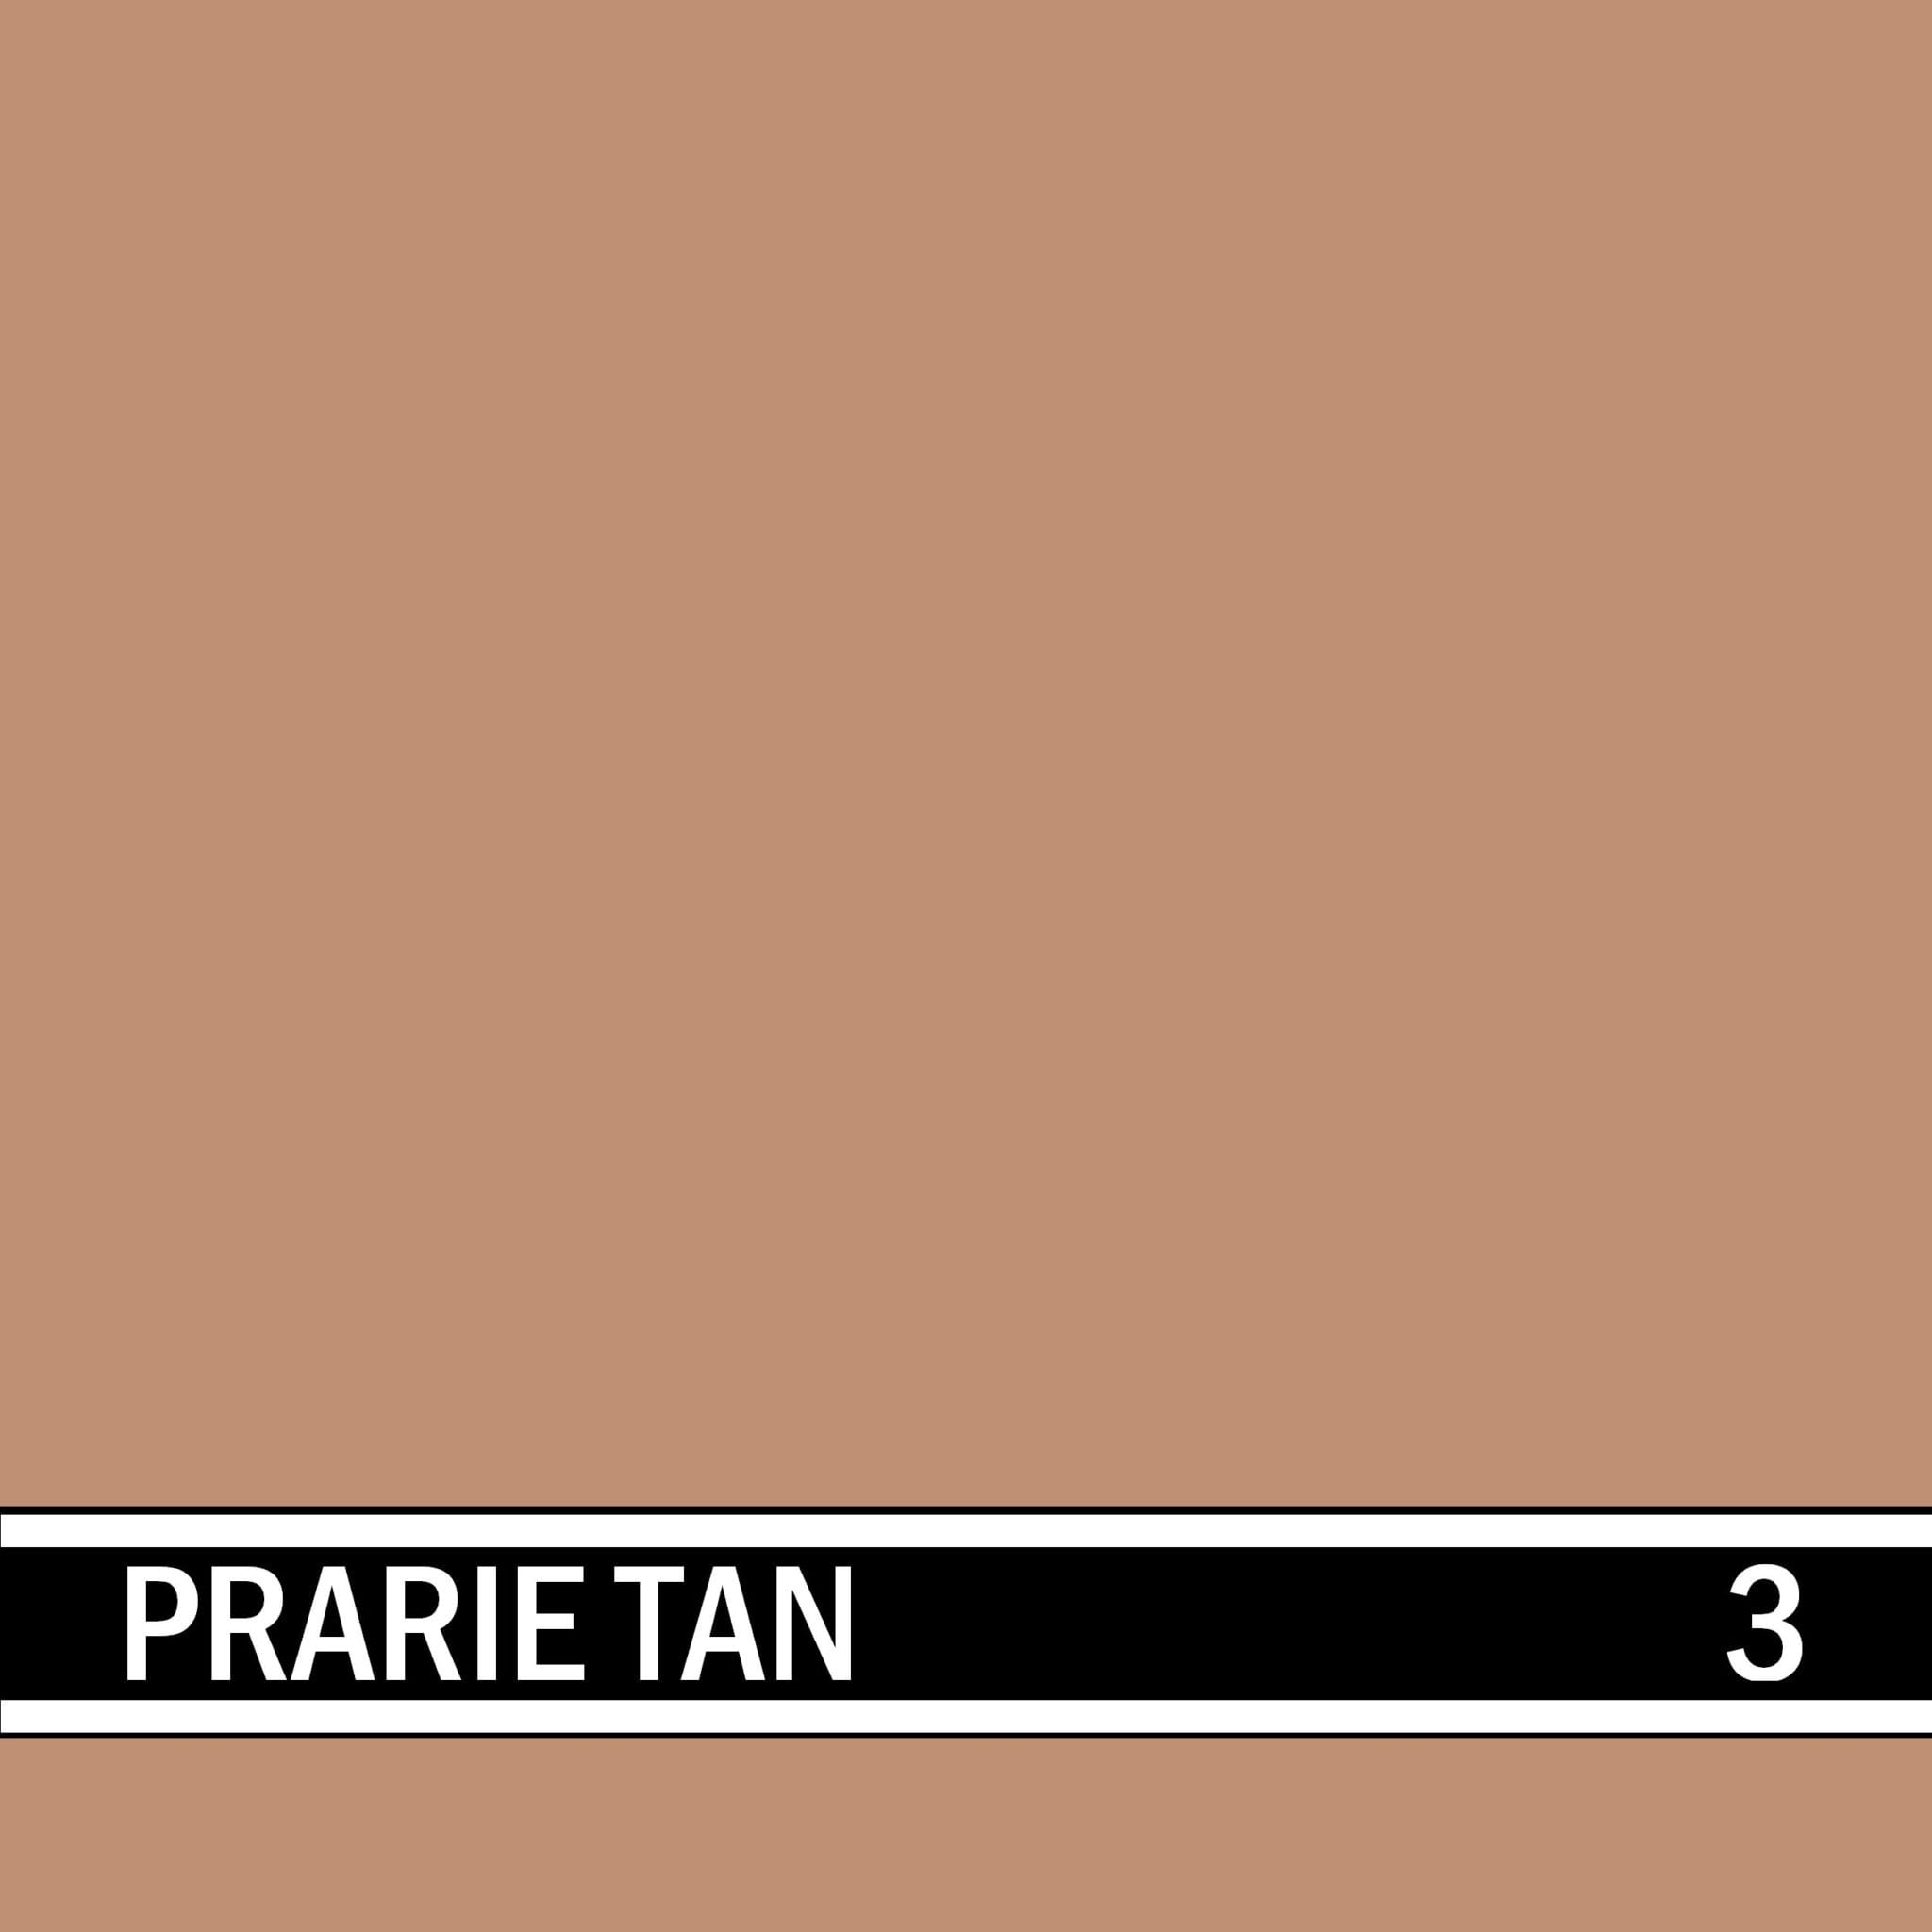 Prarie Tan integral concrete color for stamped concrete and decorative colored concrete